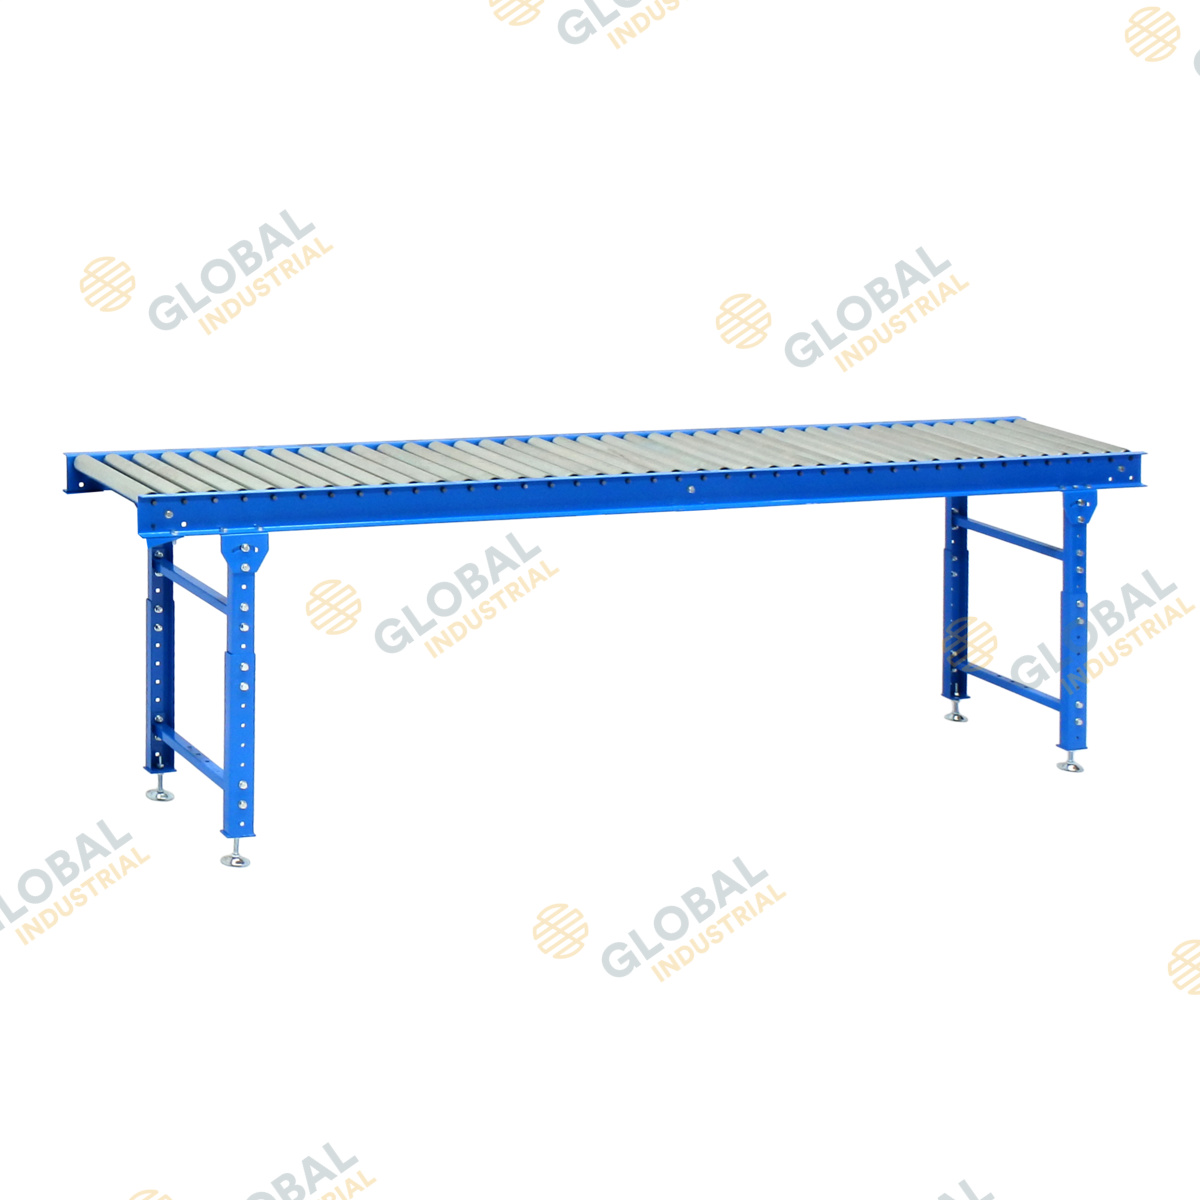 3000mm Conveyor Roller Bed with 2 legs